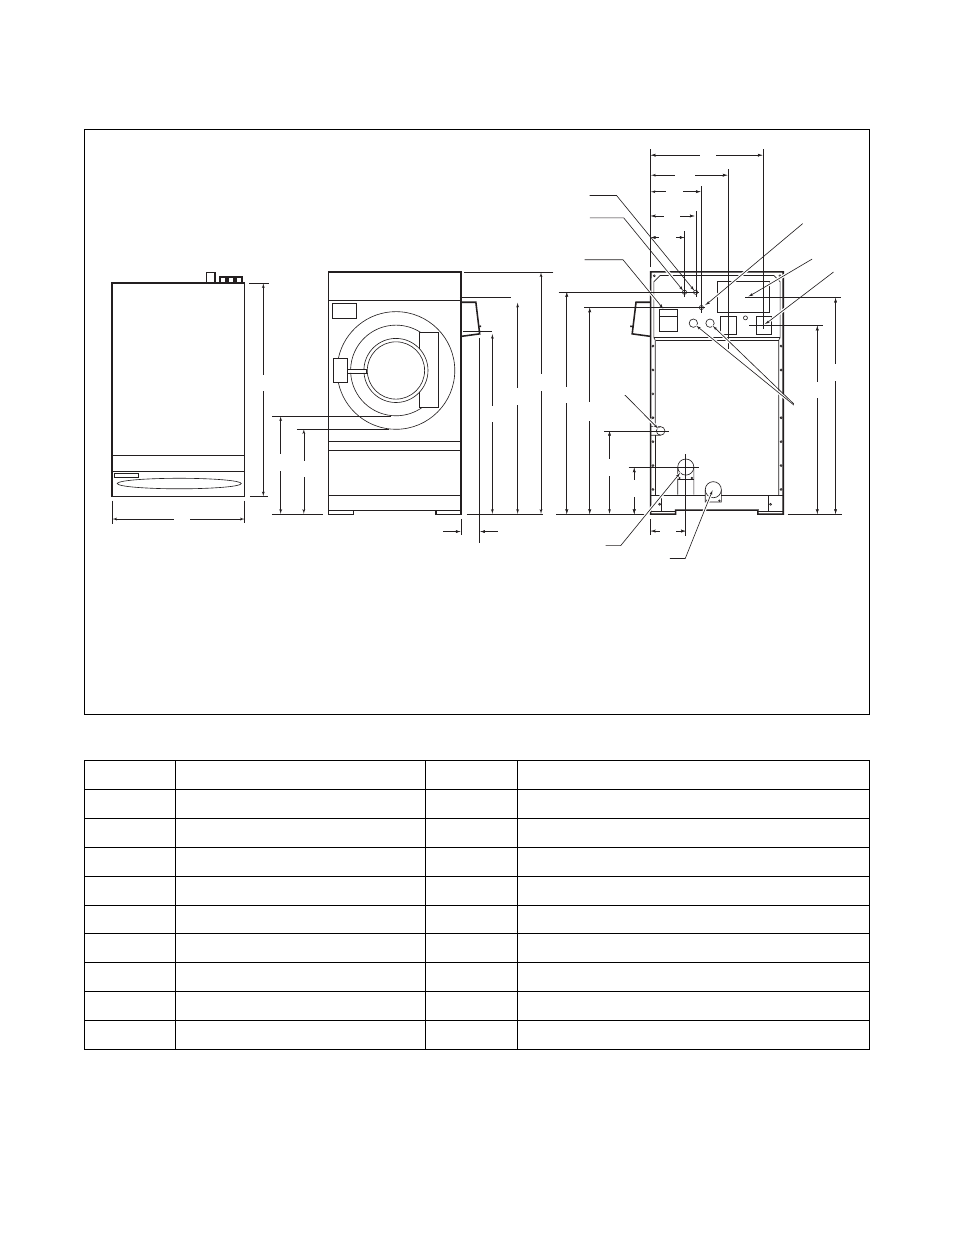 hight resolution of 175 pound models alliance laundry systems phm1397c user manual page 24 48